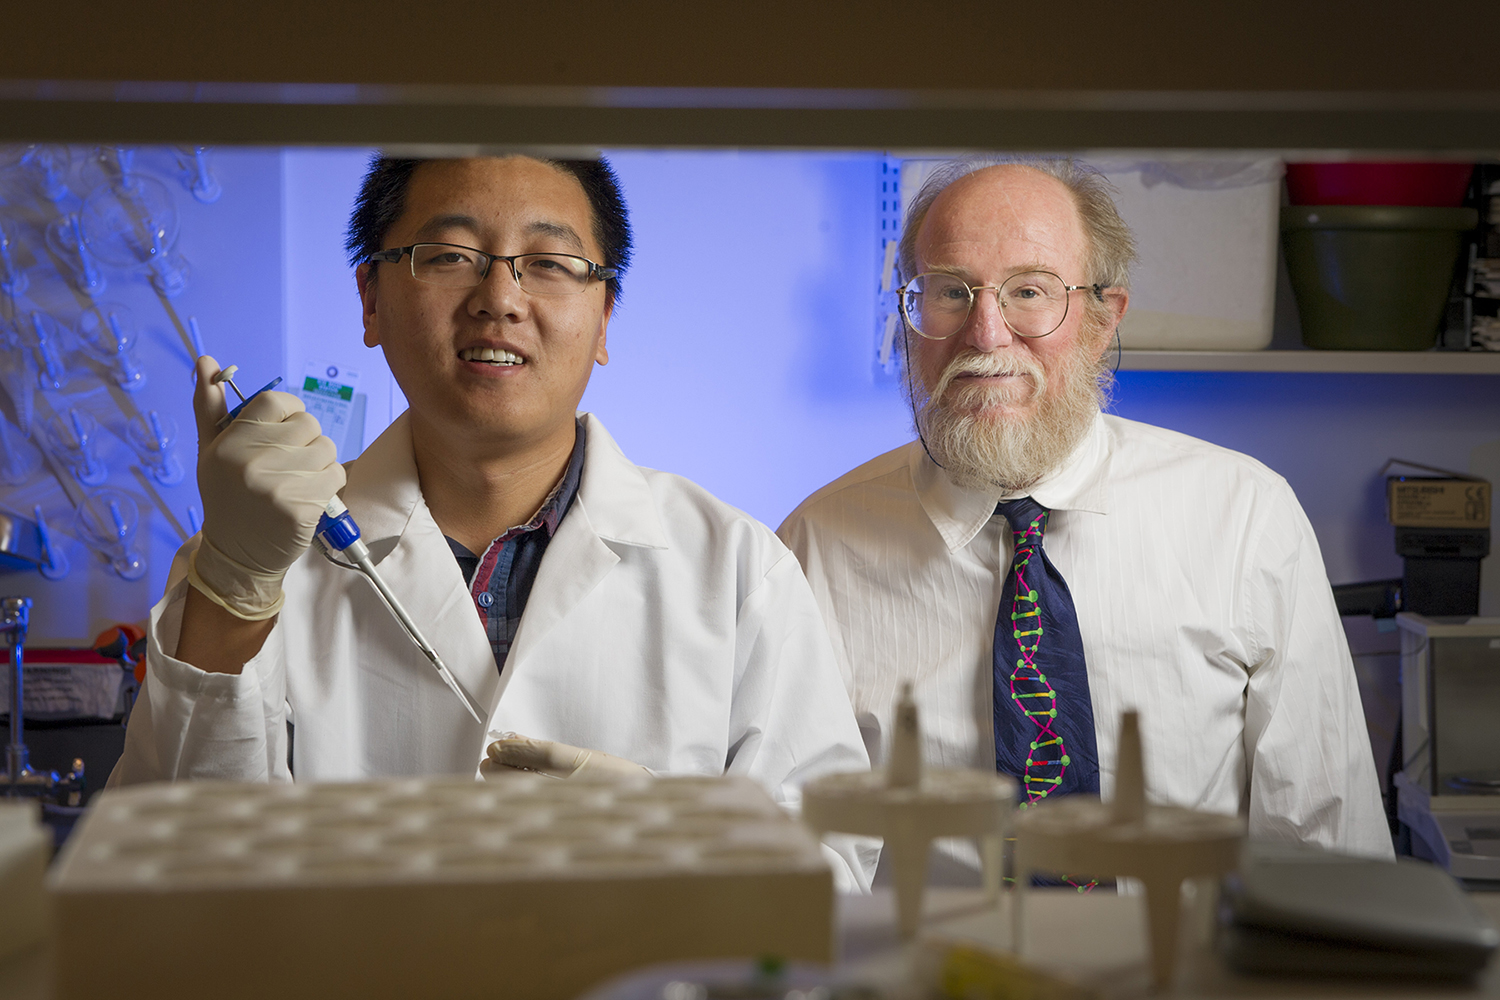 Graduate student Tianqi Song (left) and professor John Reif (right).